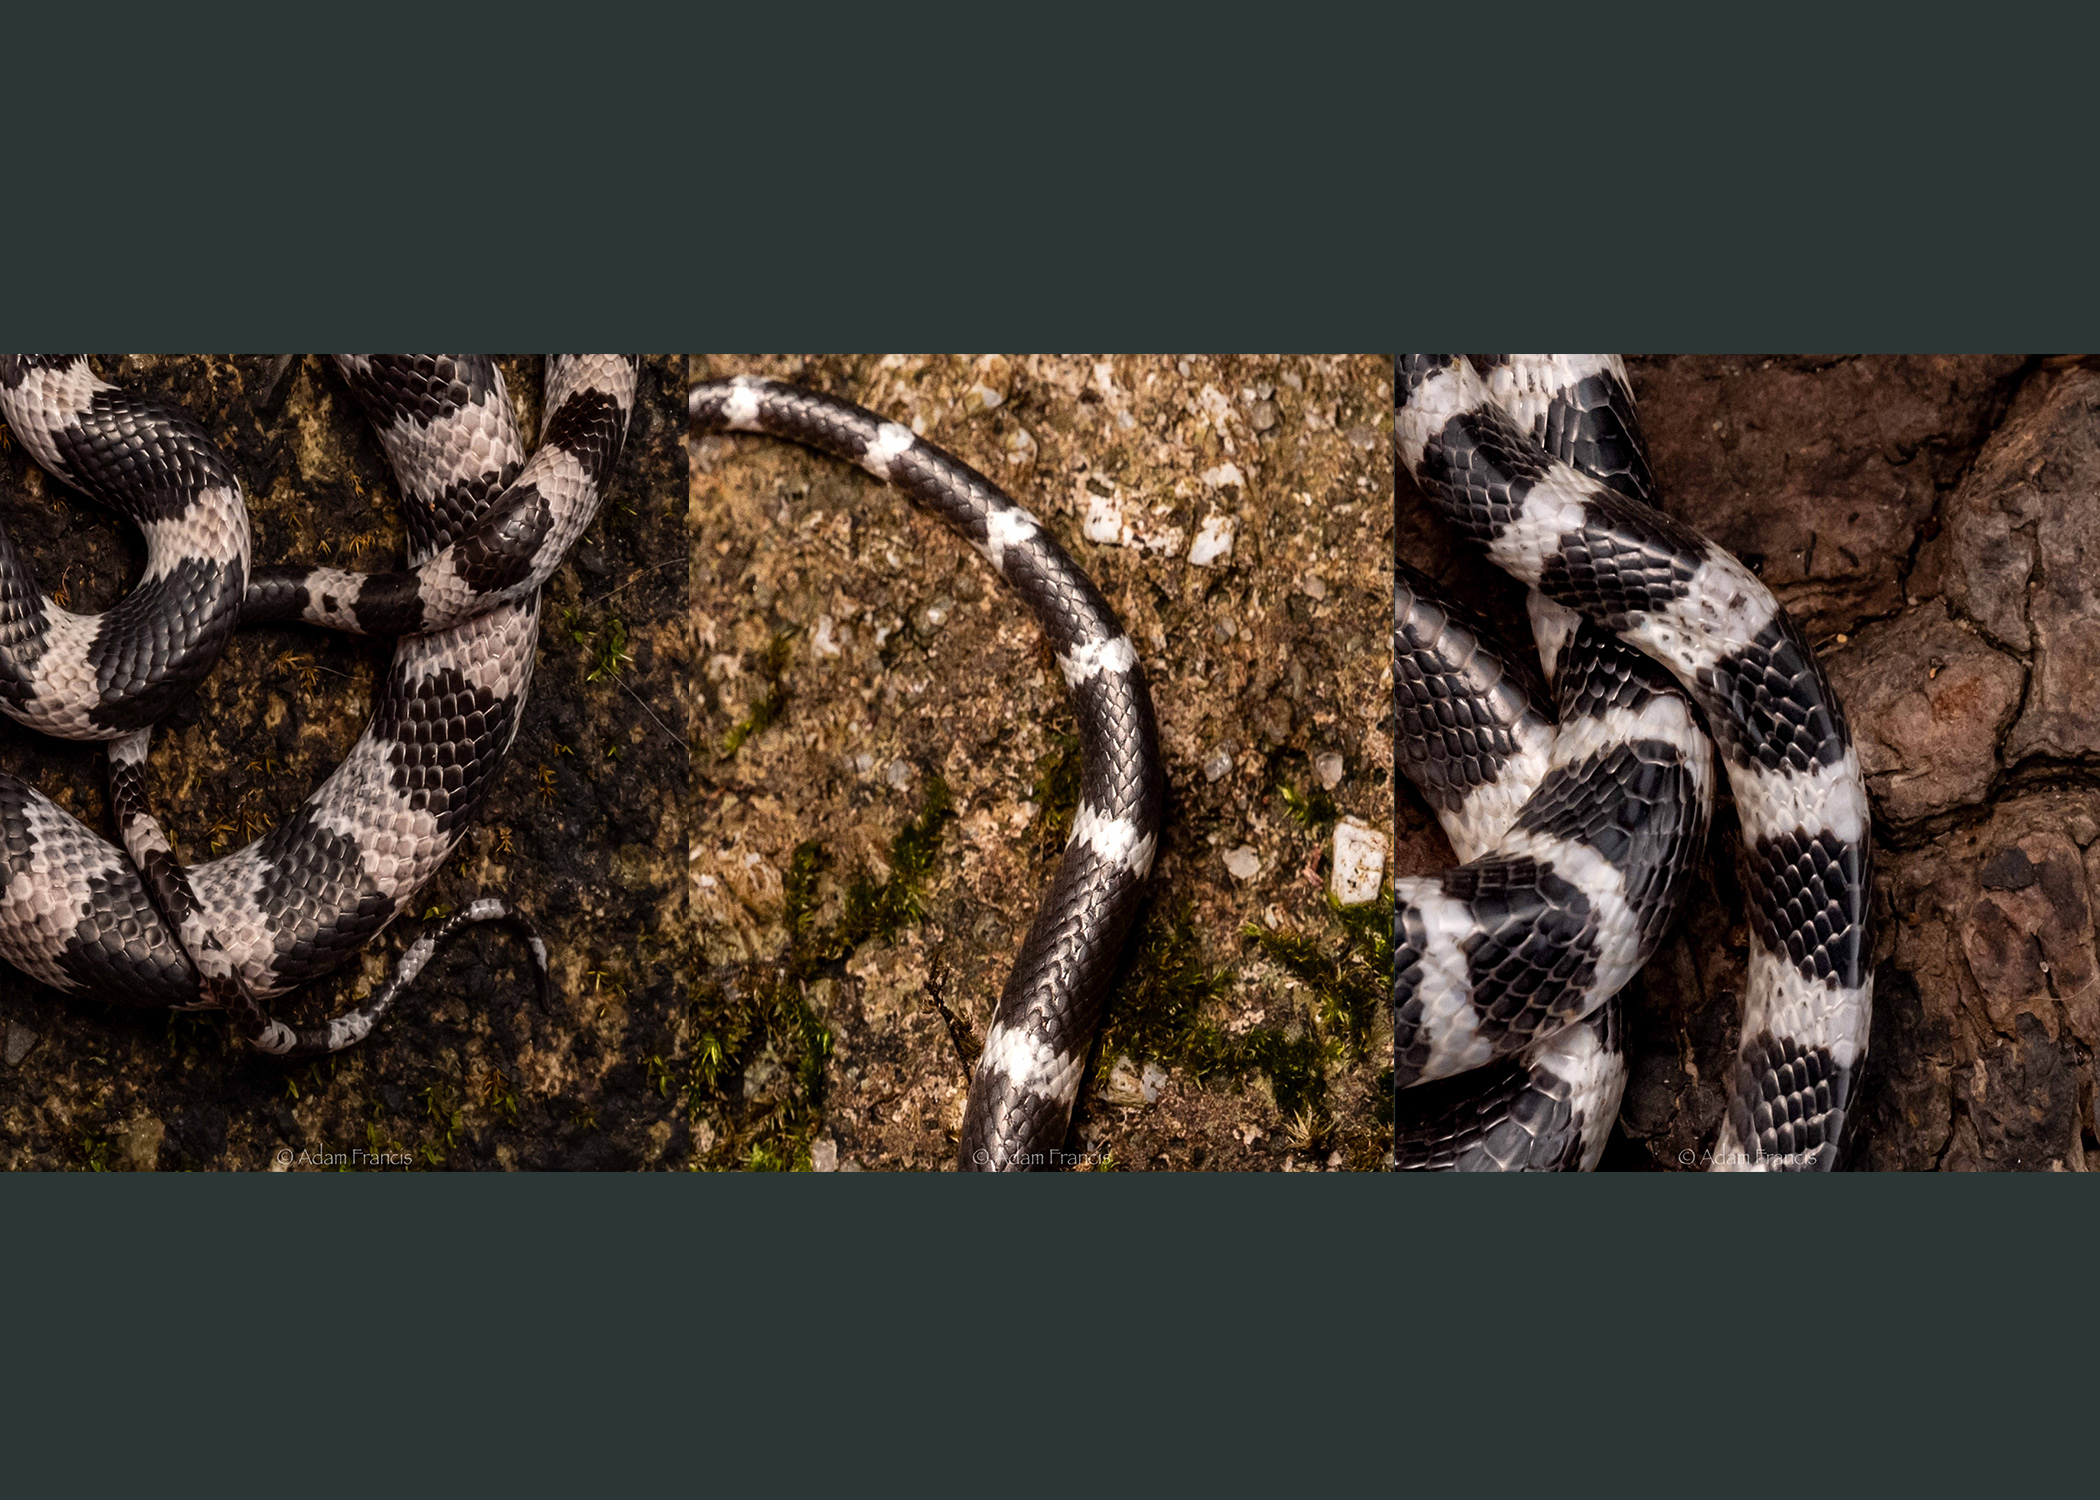 From left to right: Futsing's Wolf Snake, Banded Wolf Snake, Many Banded Krait